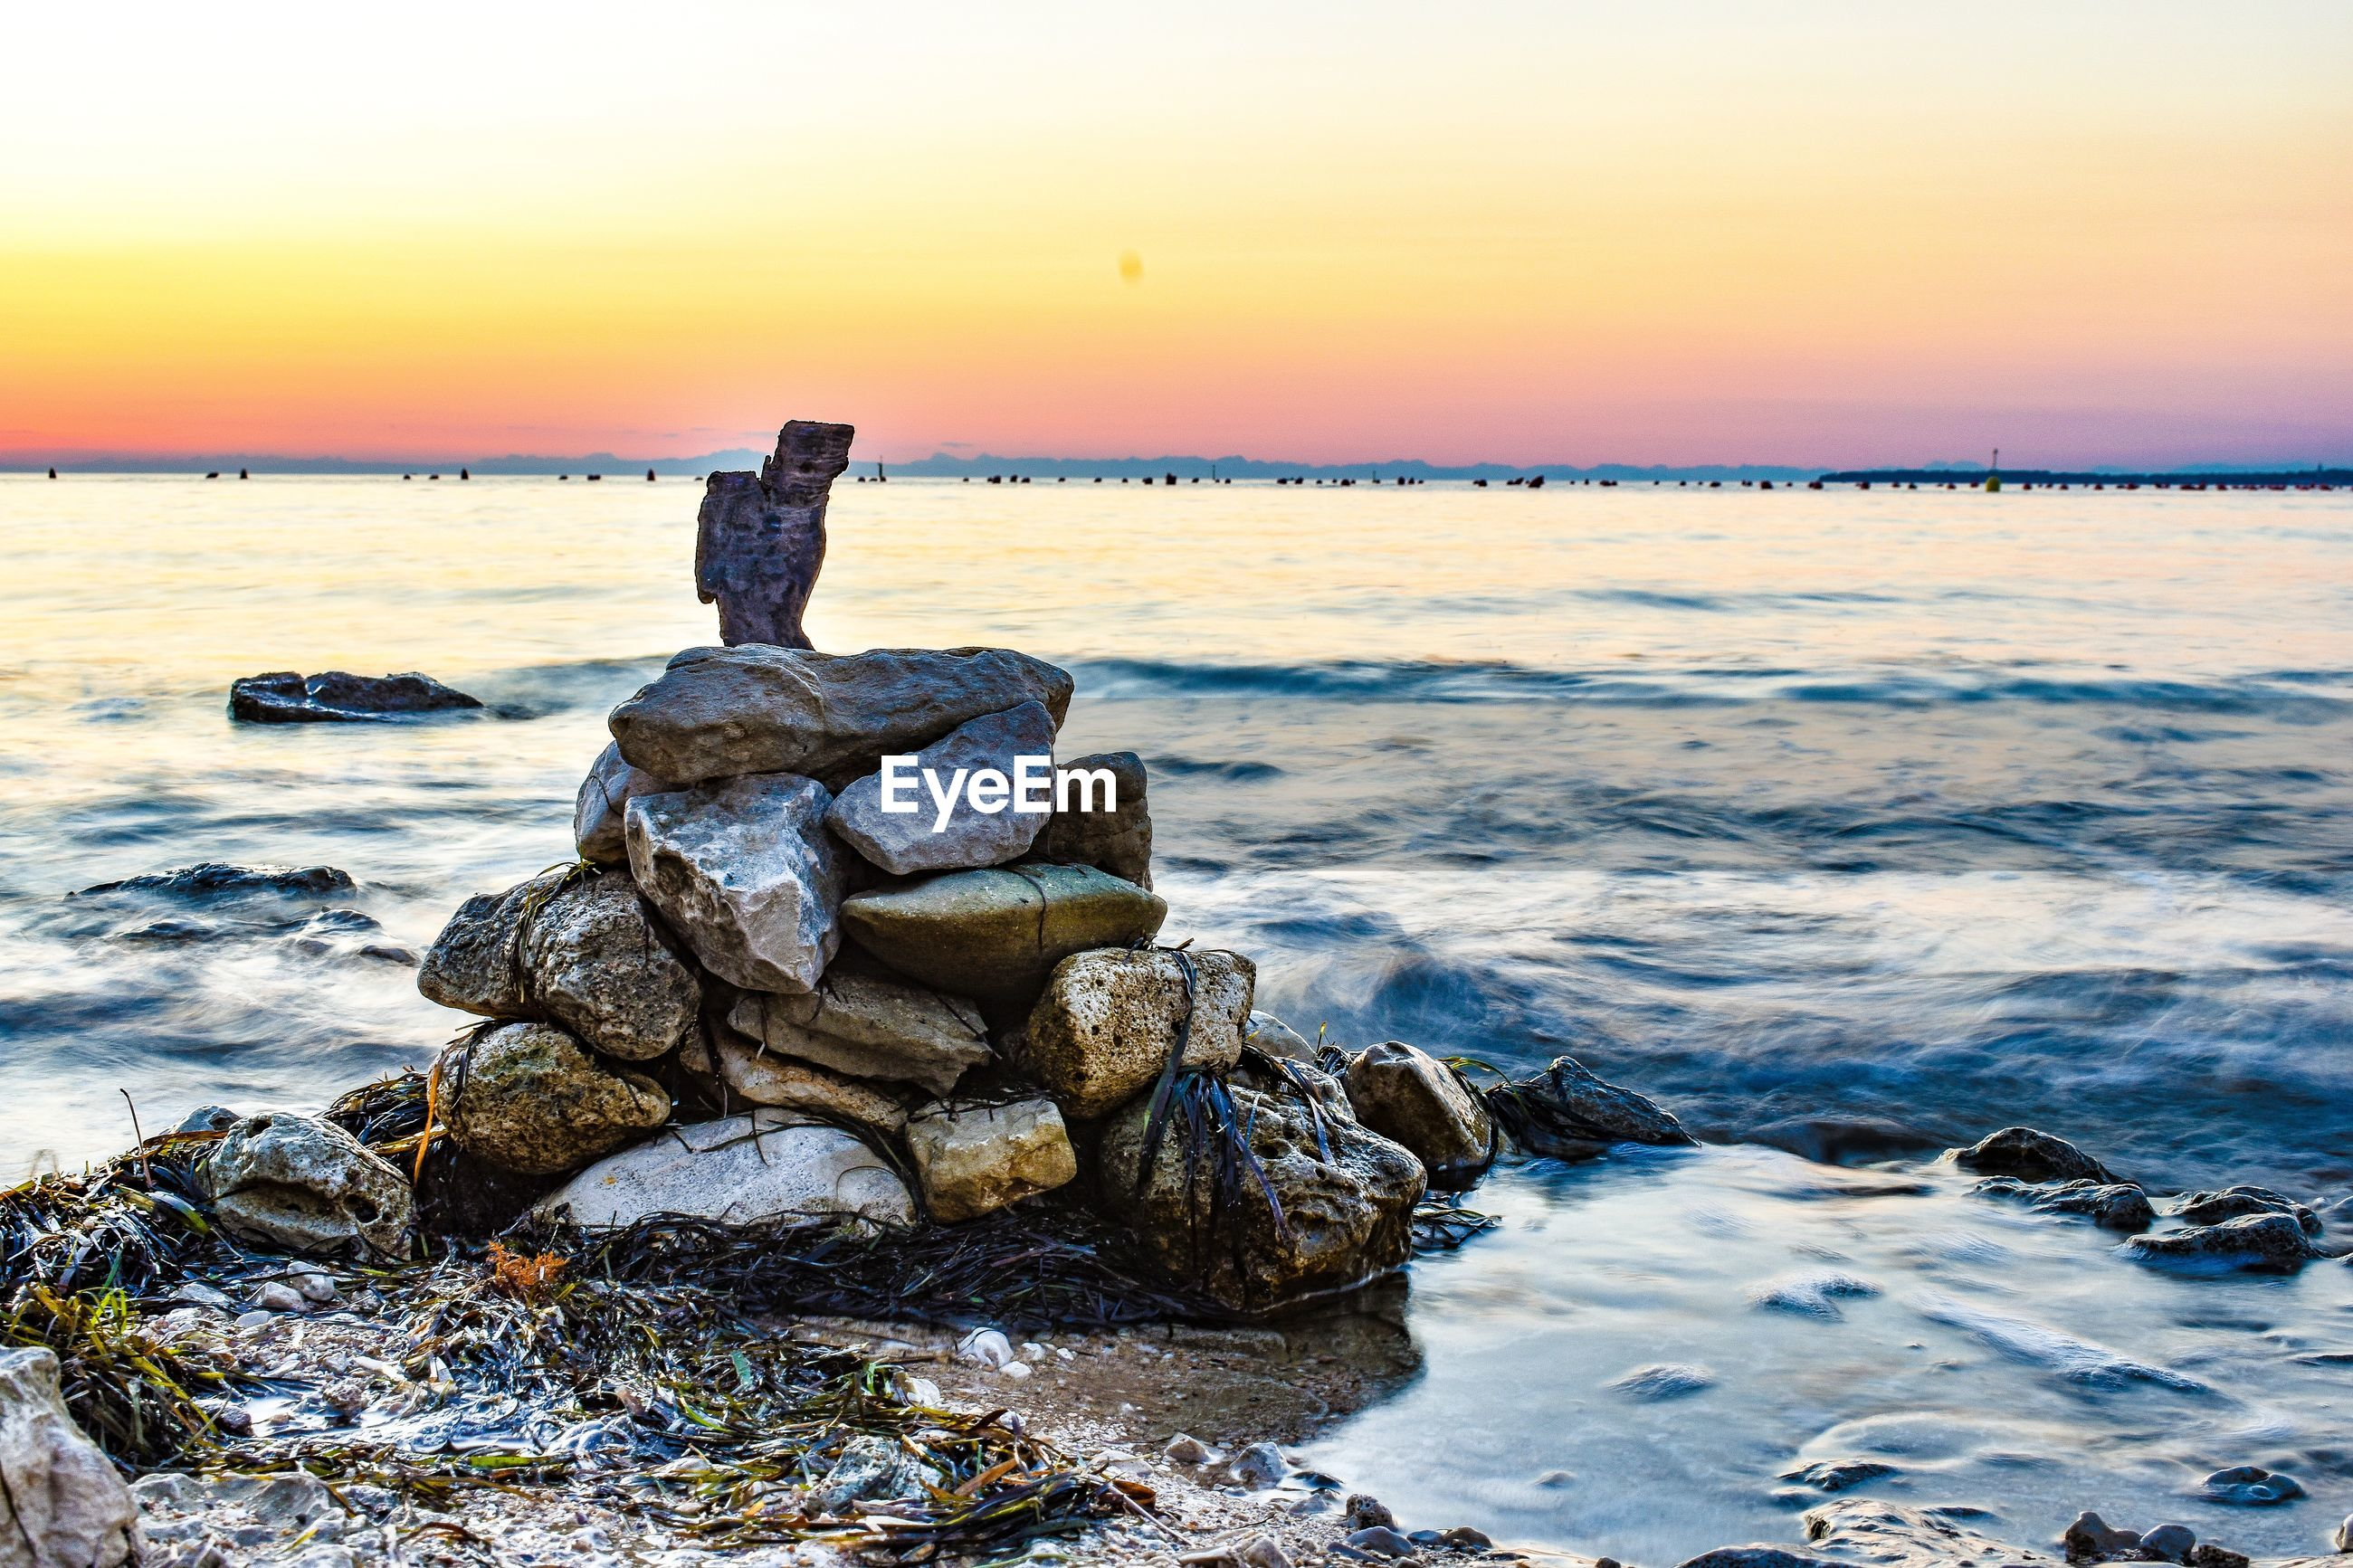 SCENIC VIEW OF ROCKS AT BEACH DURING SUNSET